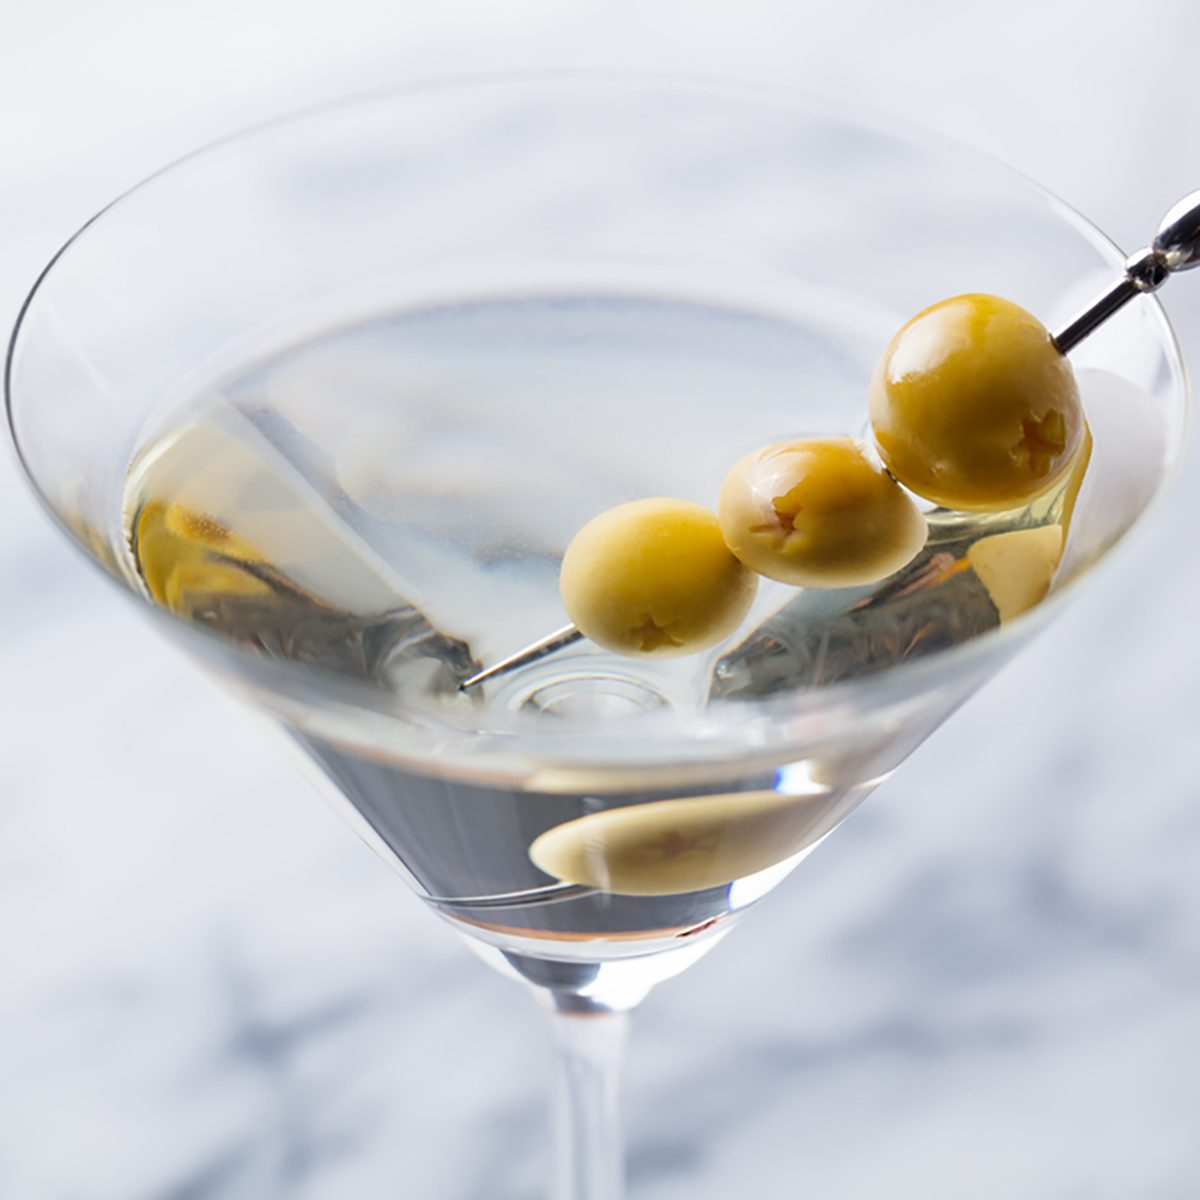 Here's How to Shake (or Stir) a Martini Like the Pros